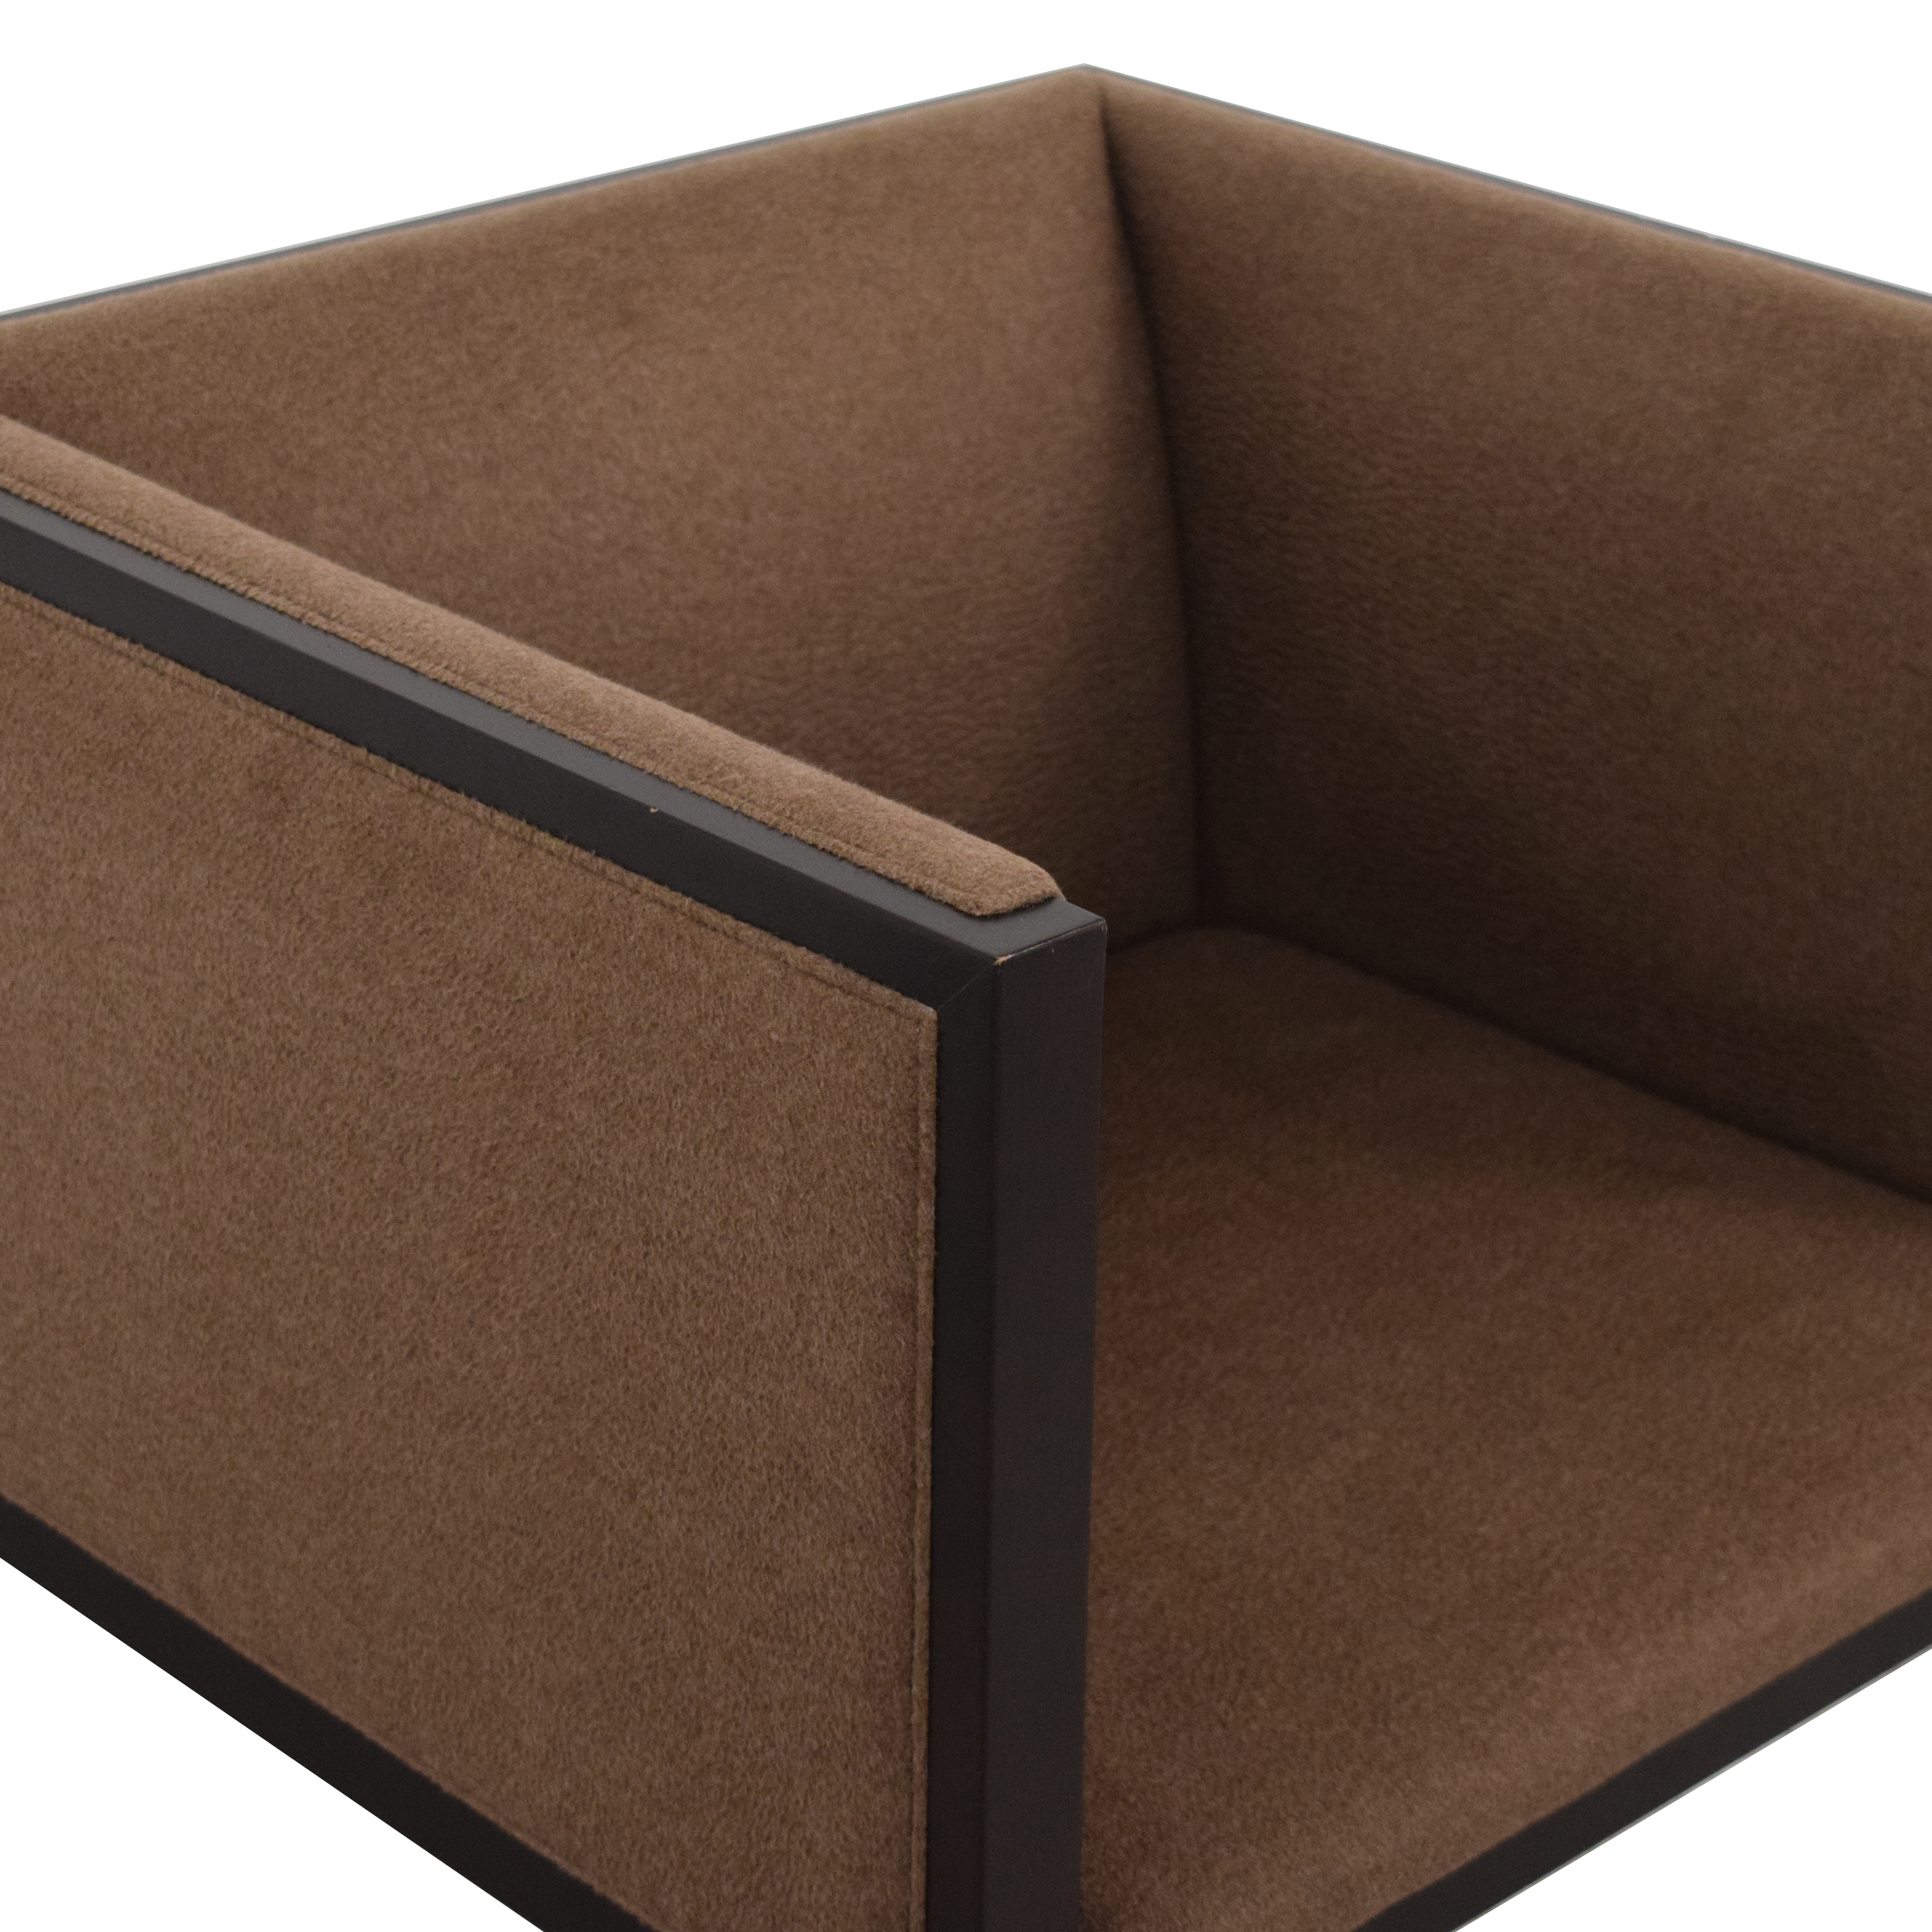 Hudson Furniture & Bedding Hudson Furniture & Bedding Contemporary Dining Chair discount